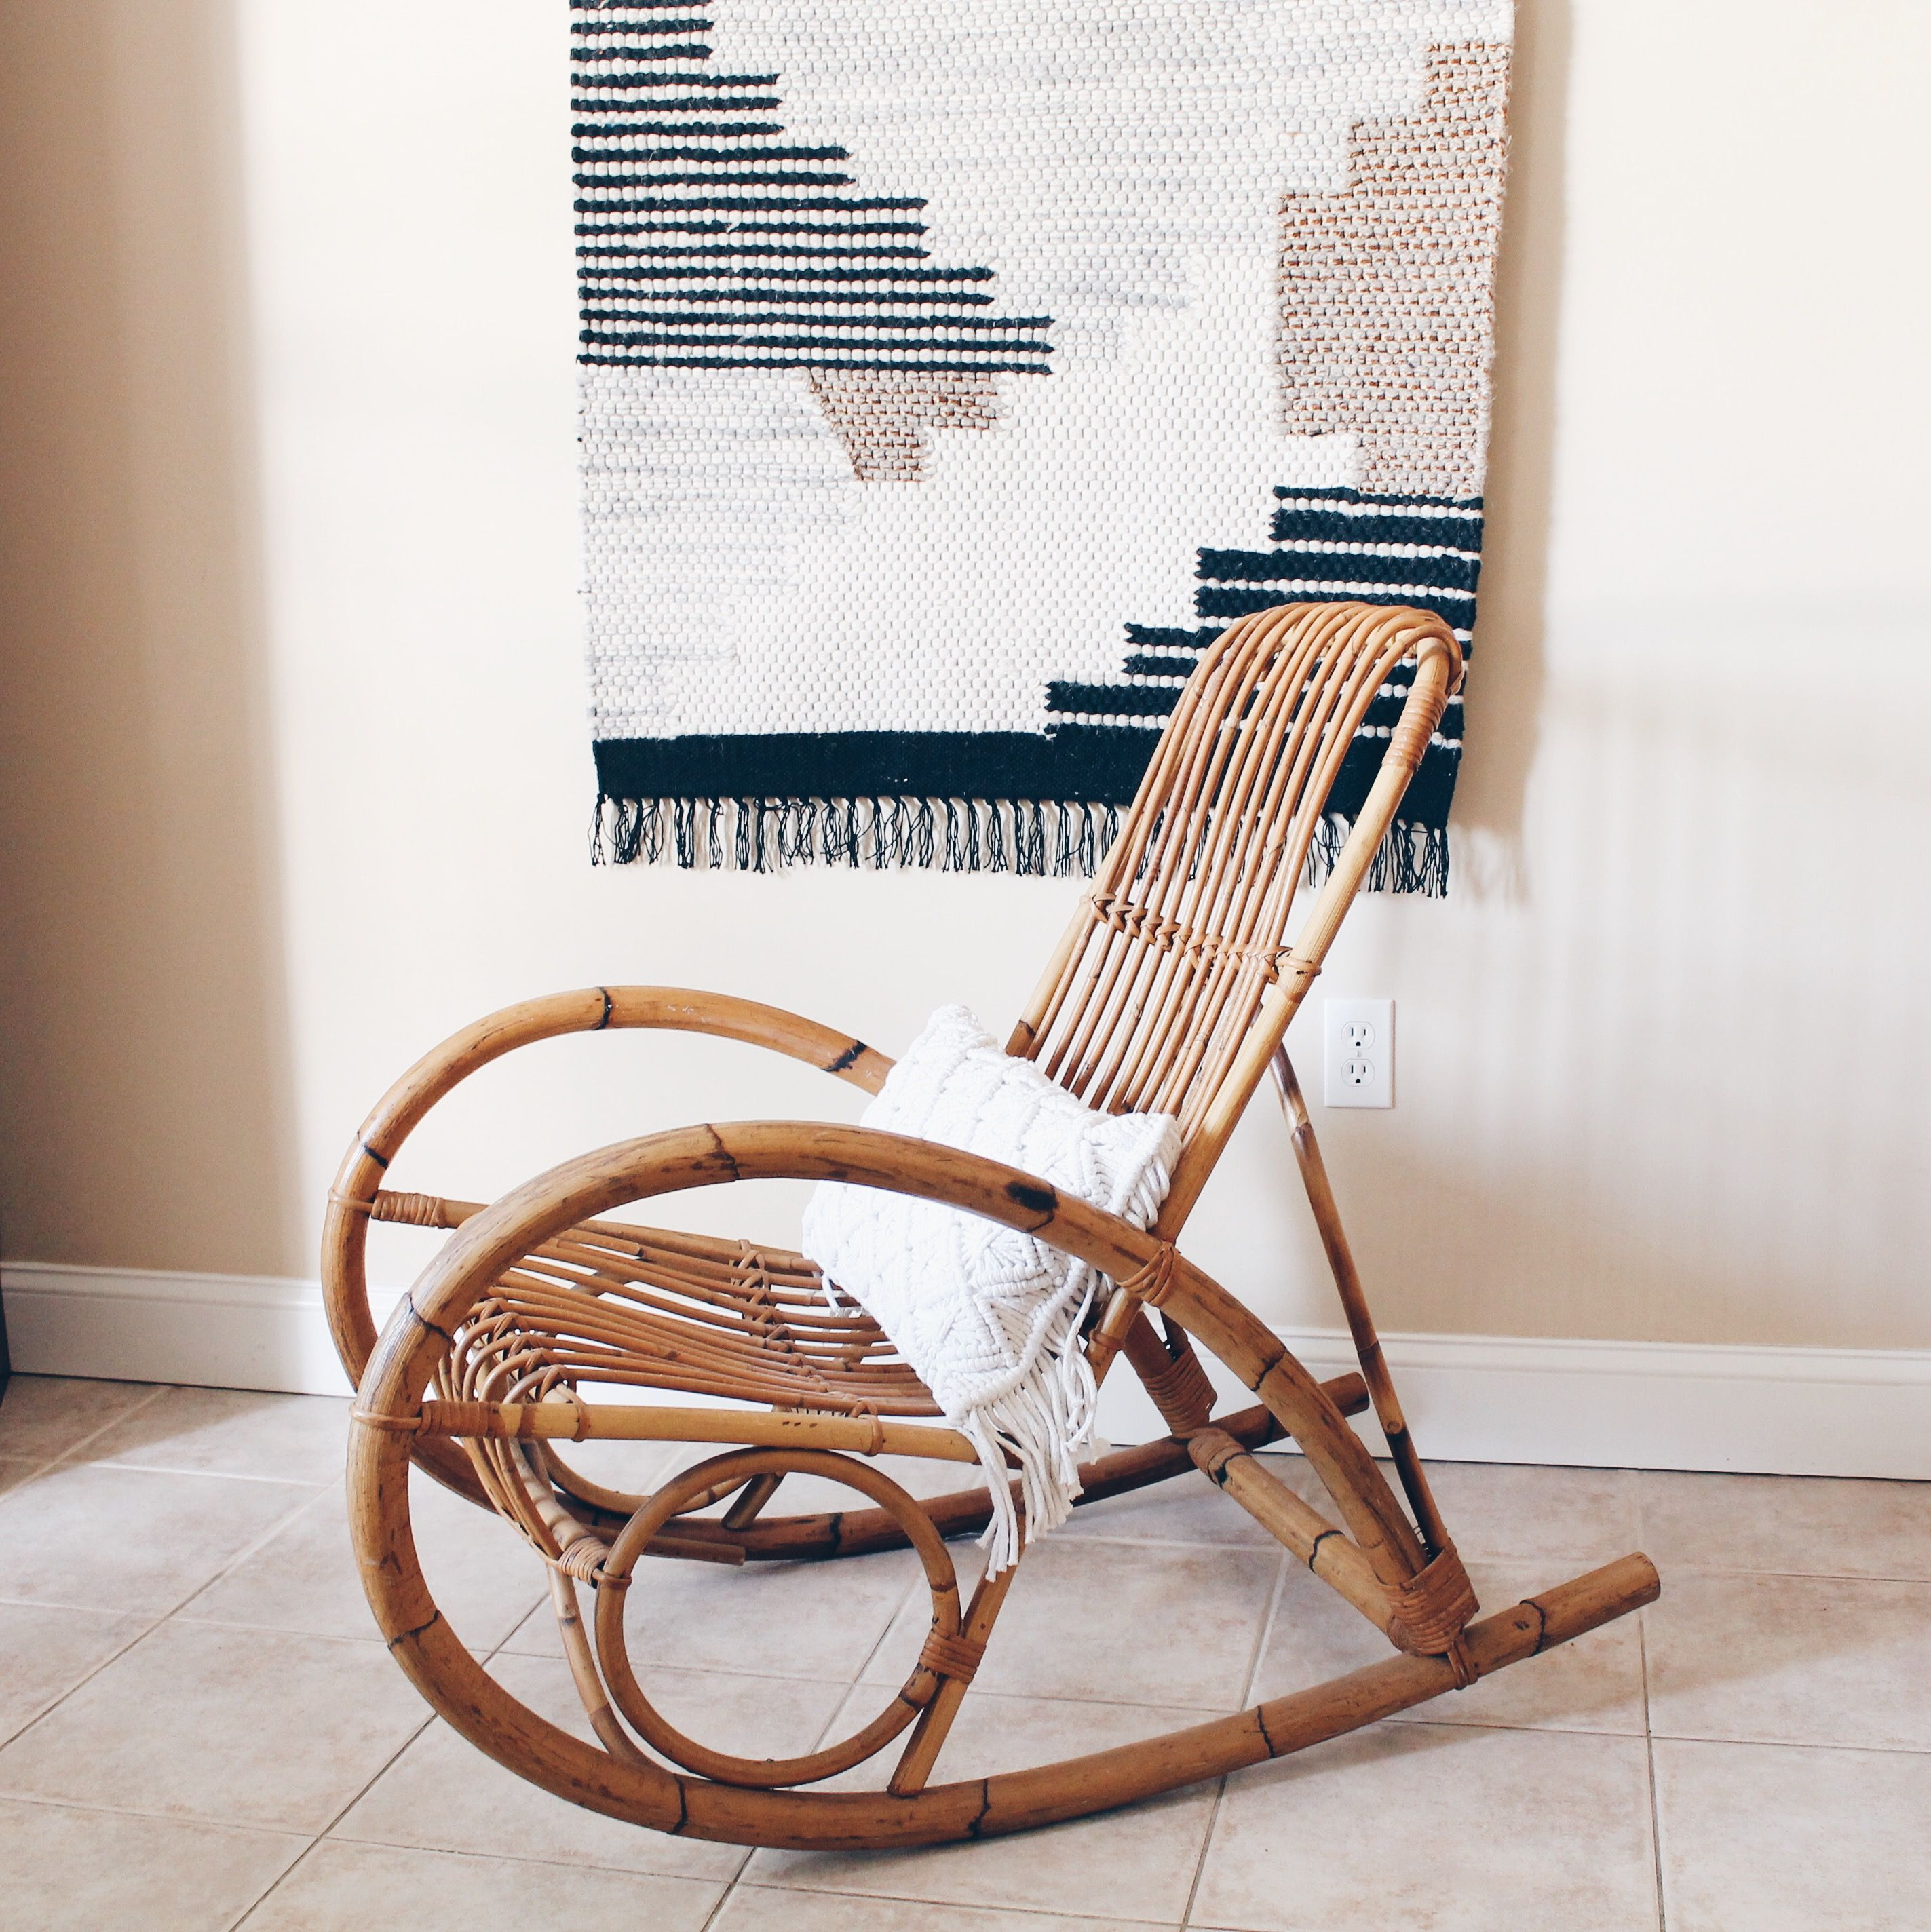 Rattan Rocking Chair Franko Albini Style Bamboo Rocking Chair Rattan Rocker Bamboo Rocker Rattan Rocking Chair Rocking Chair Makeover Rocking Chair Nursery